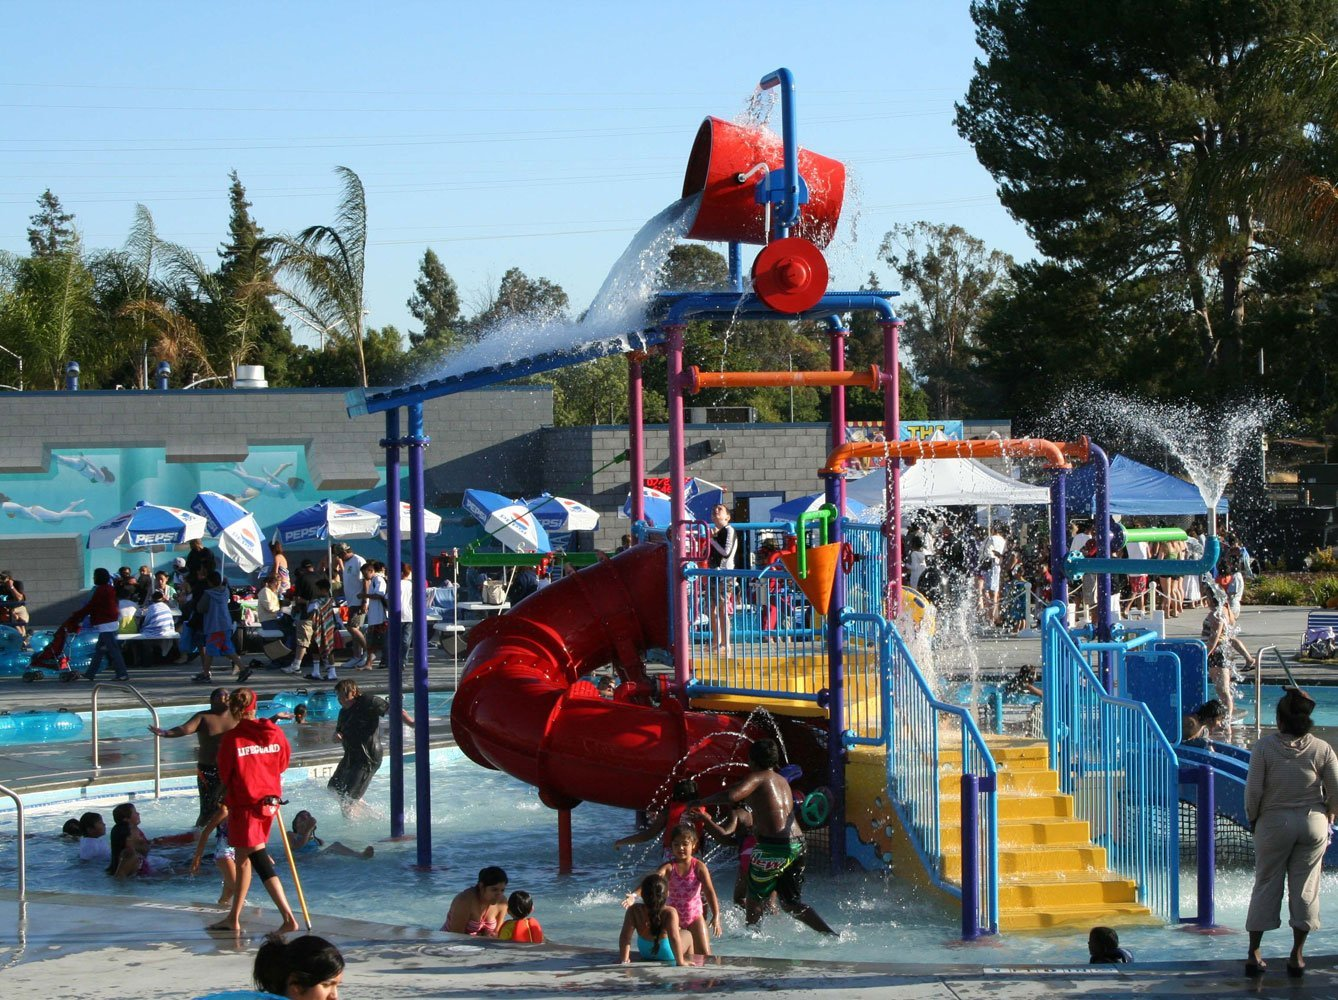 Safe and Sound Splashing <br> Waterpark Ride Safety Precautions